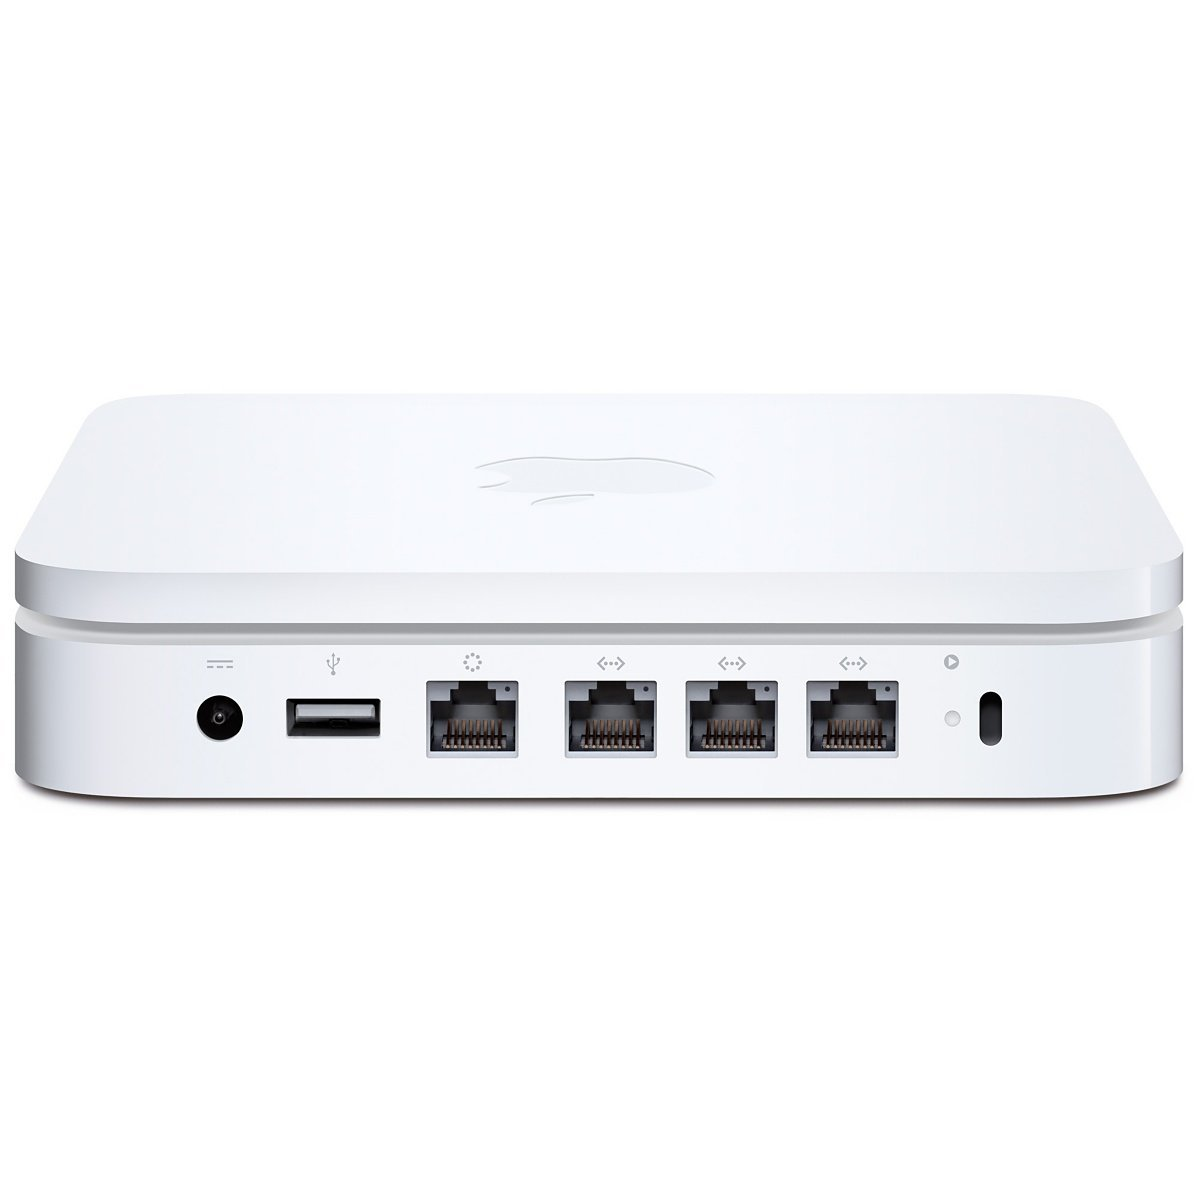 Apple 5th Gen AirPort Extreme Base Station (MD031LL/A)